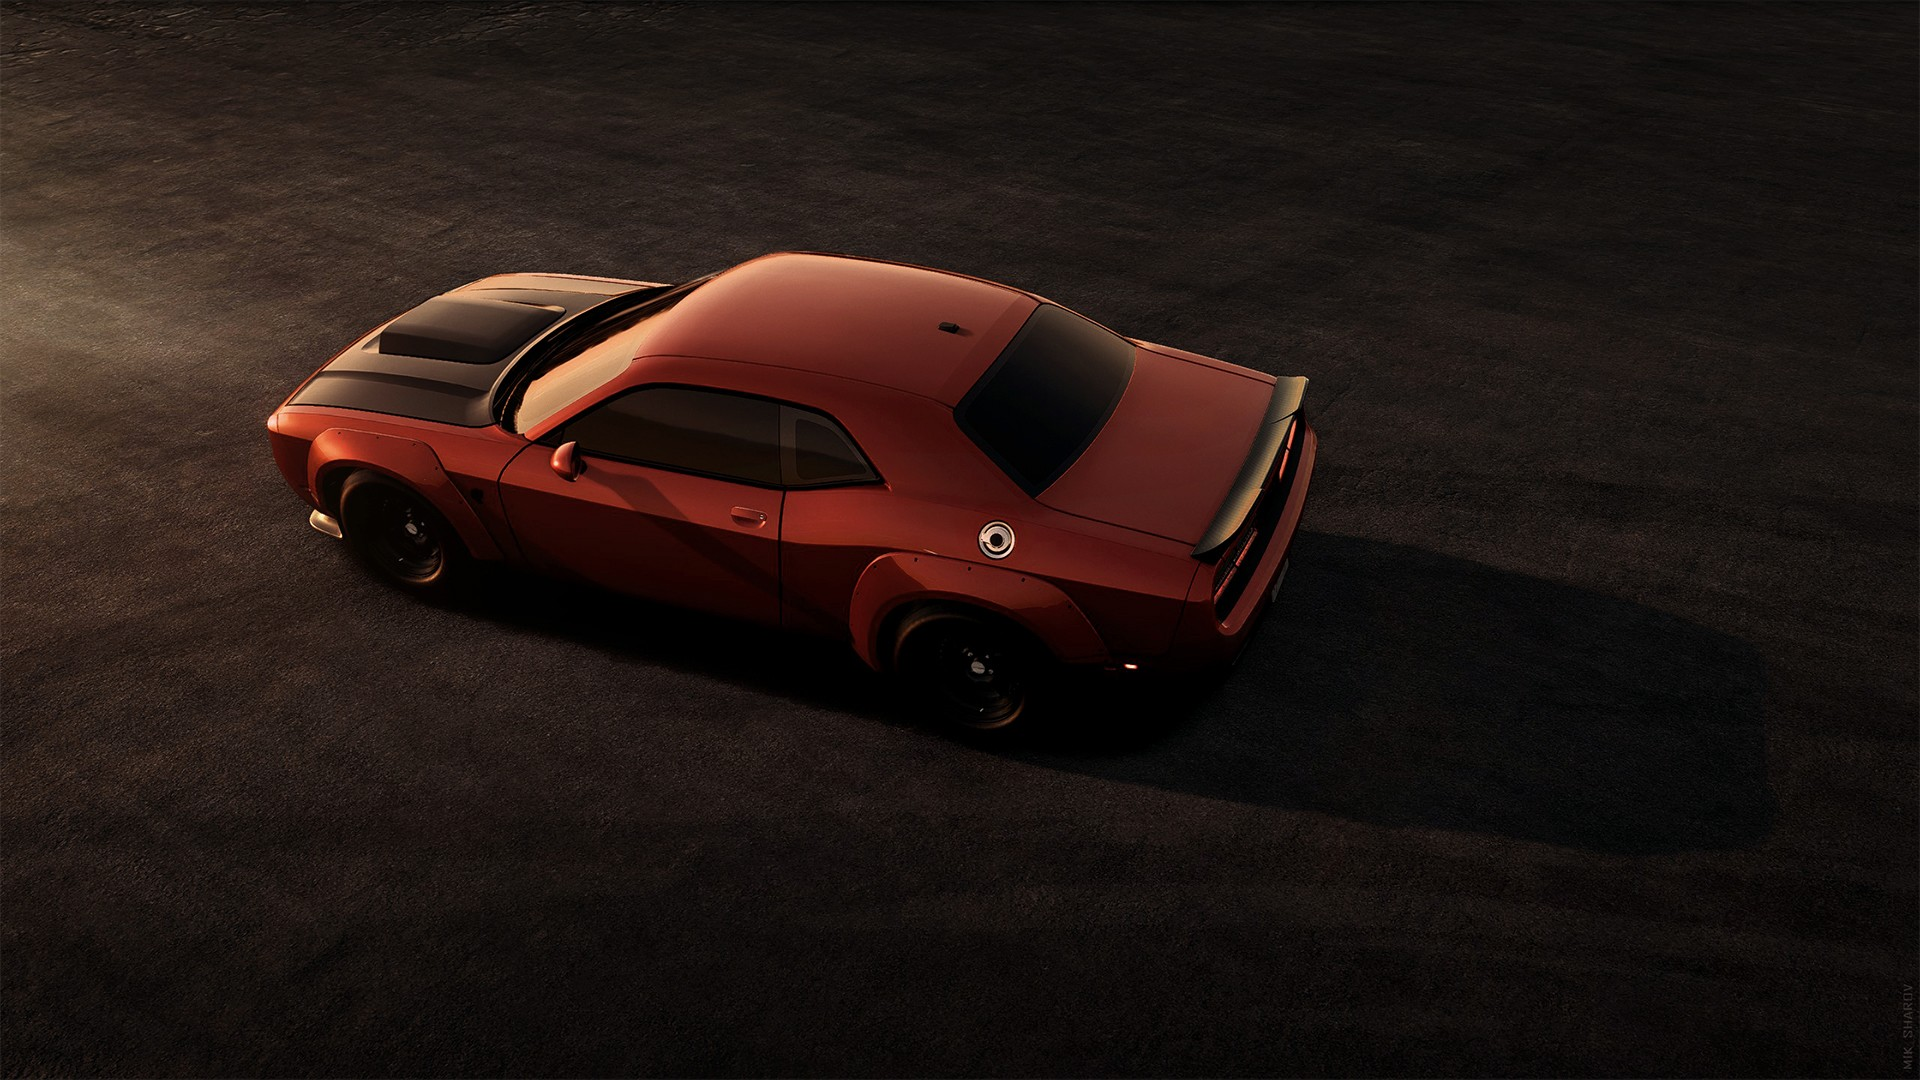 Car Dodge Dodge Challenger Dodge Challenger Srt Muscle Car Red Car Vehicle 1920x1080